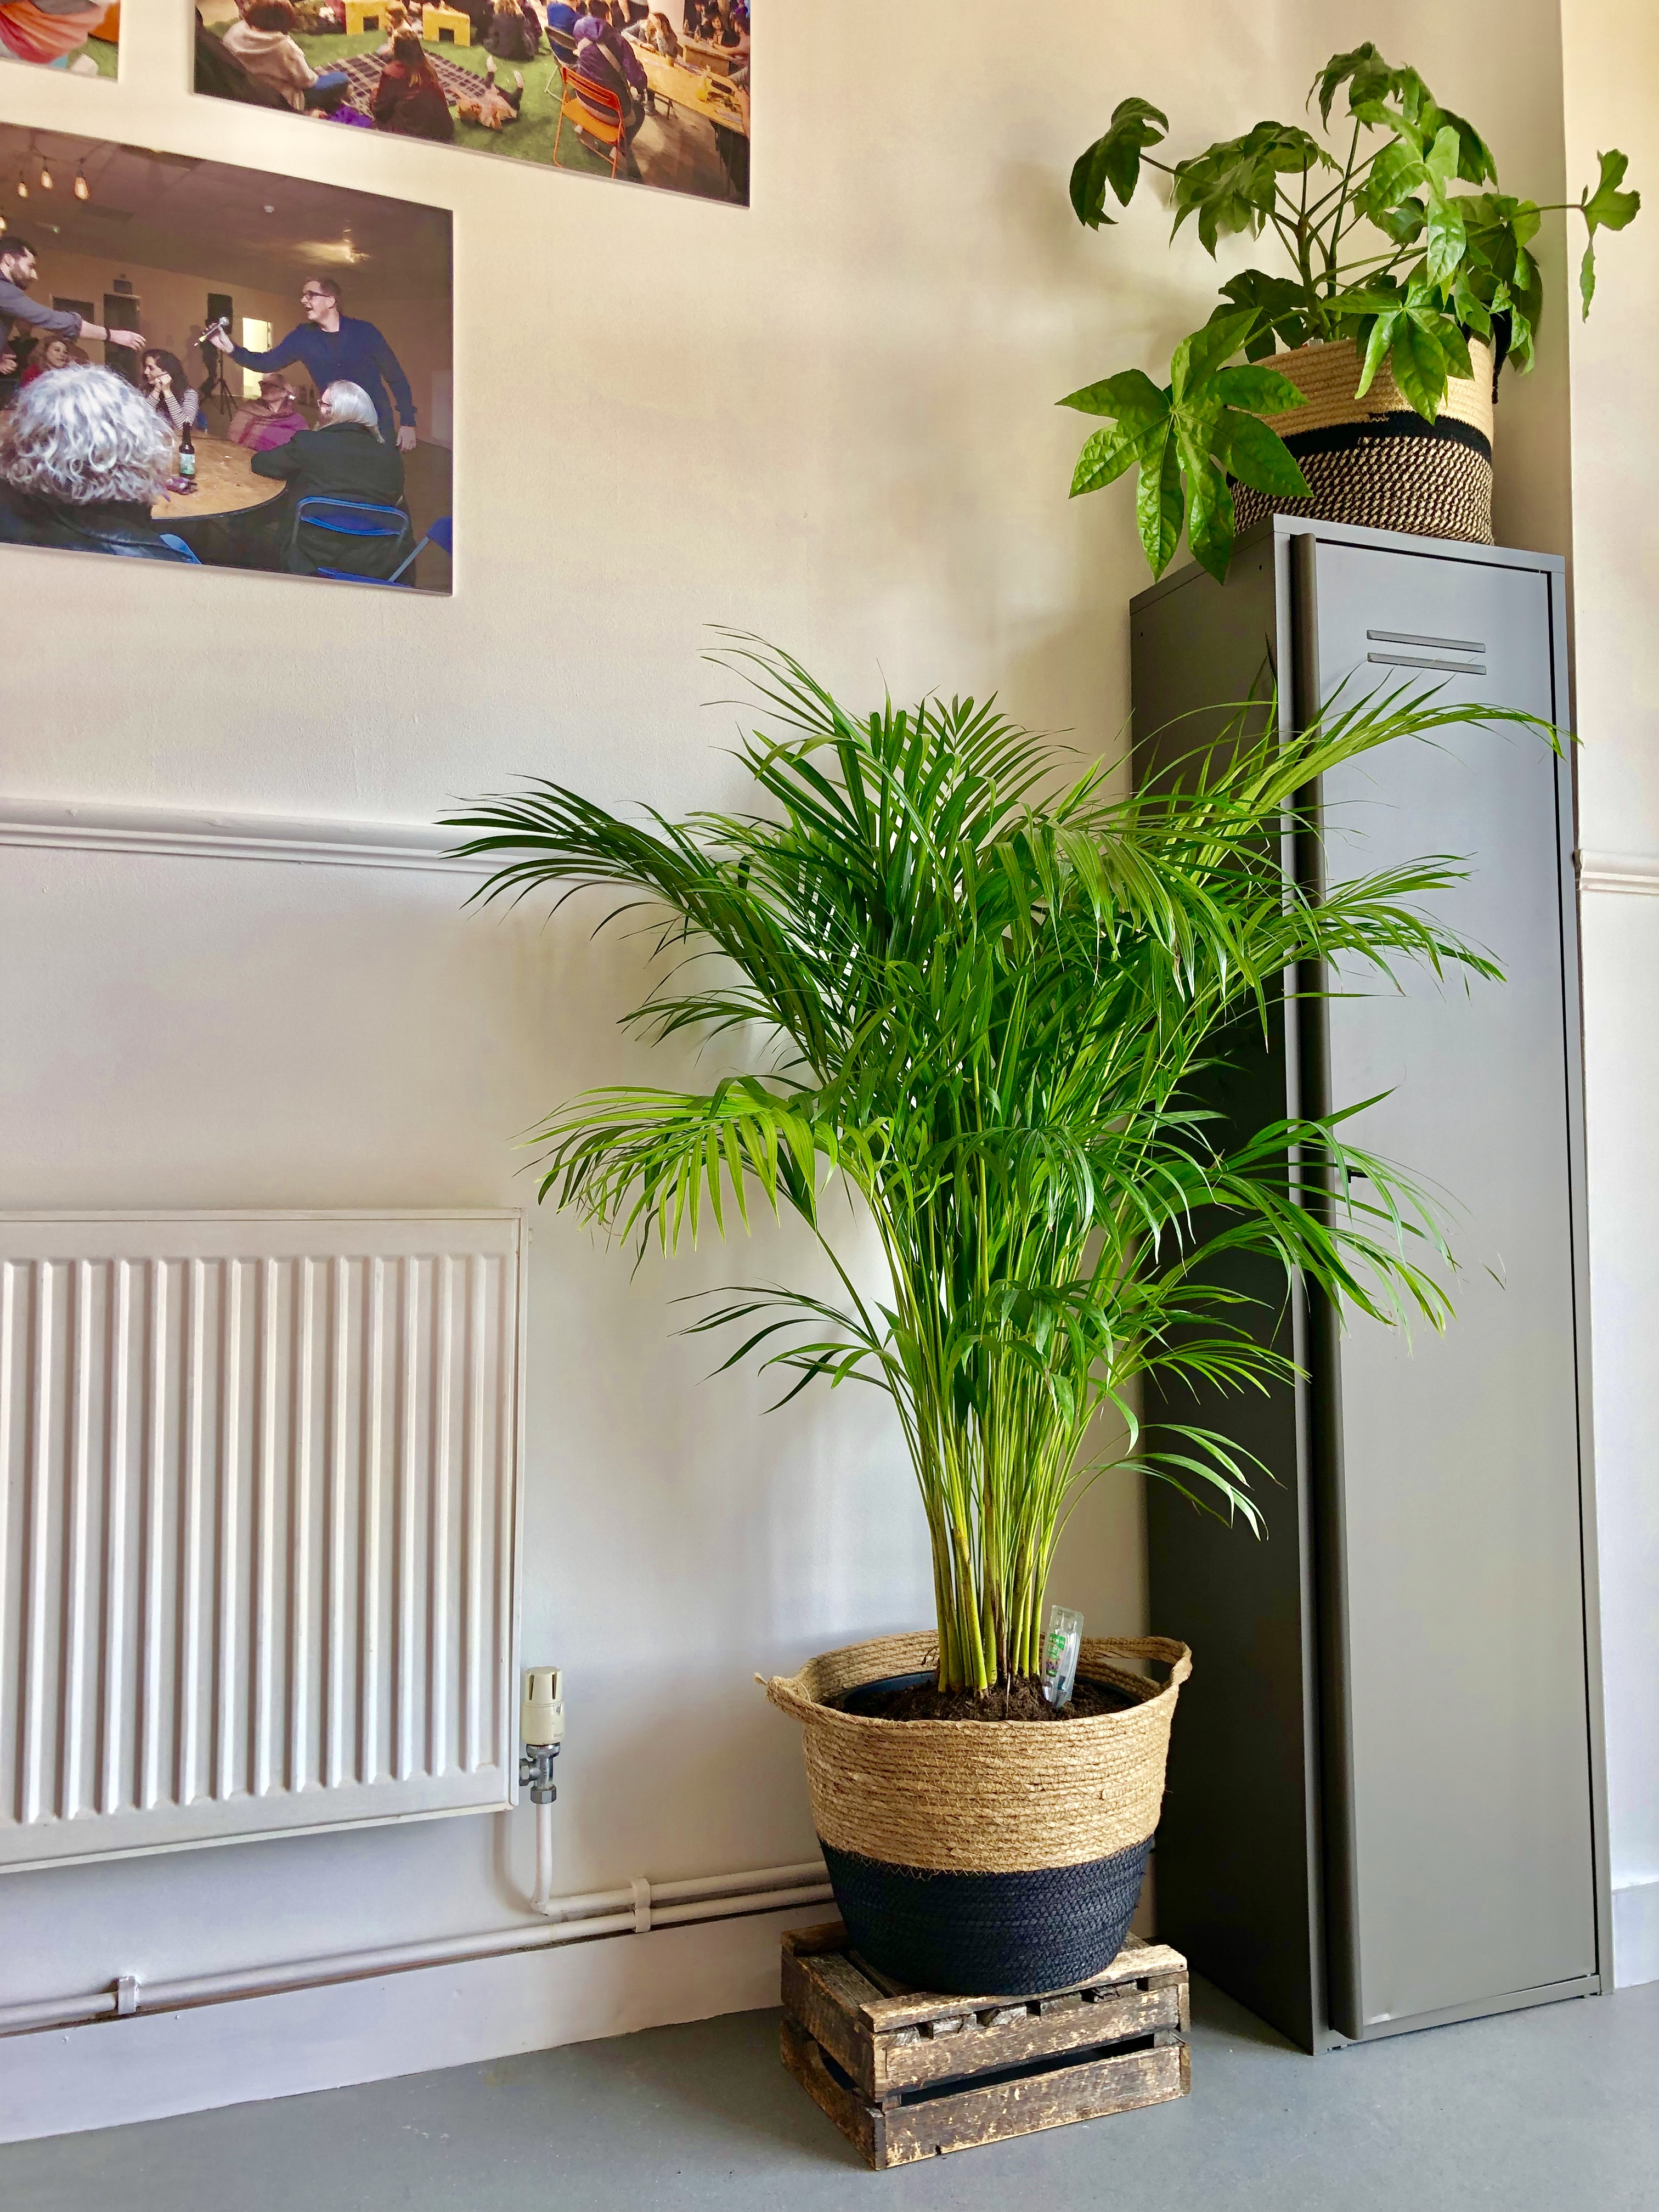 On The Benefits Of Office Plants Urban Foundry Creative Regeneration Agency